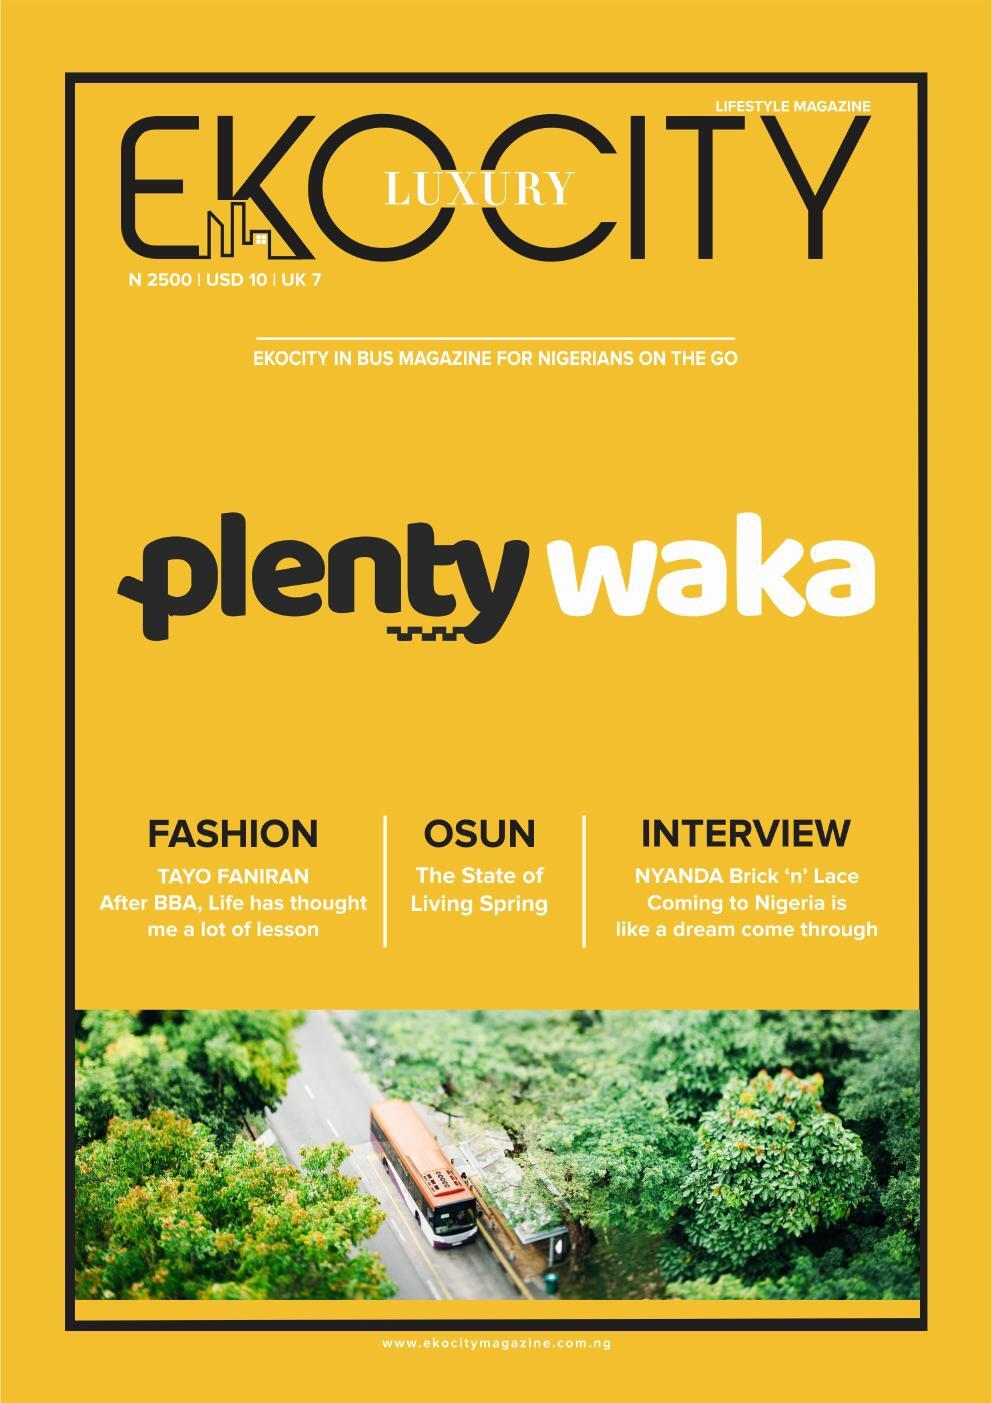 Page 1 of Ekocity Inbus Magazine of Plenty Waka Lagos